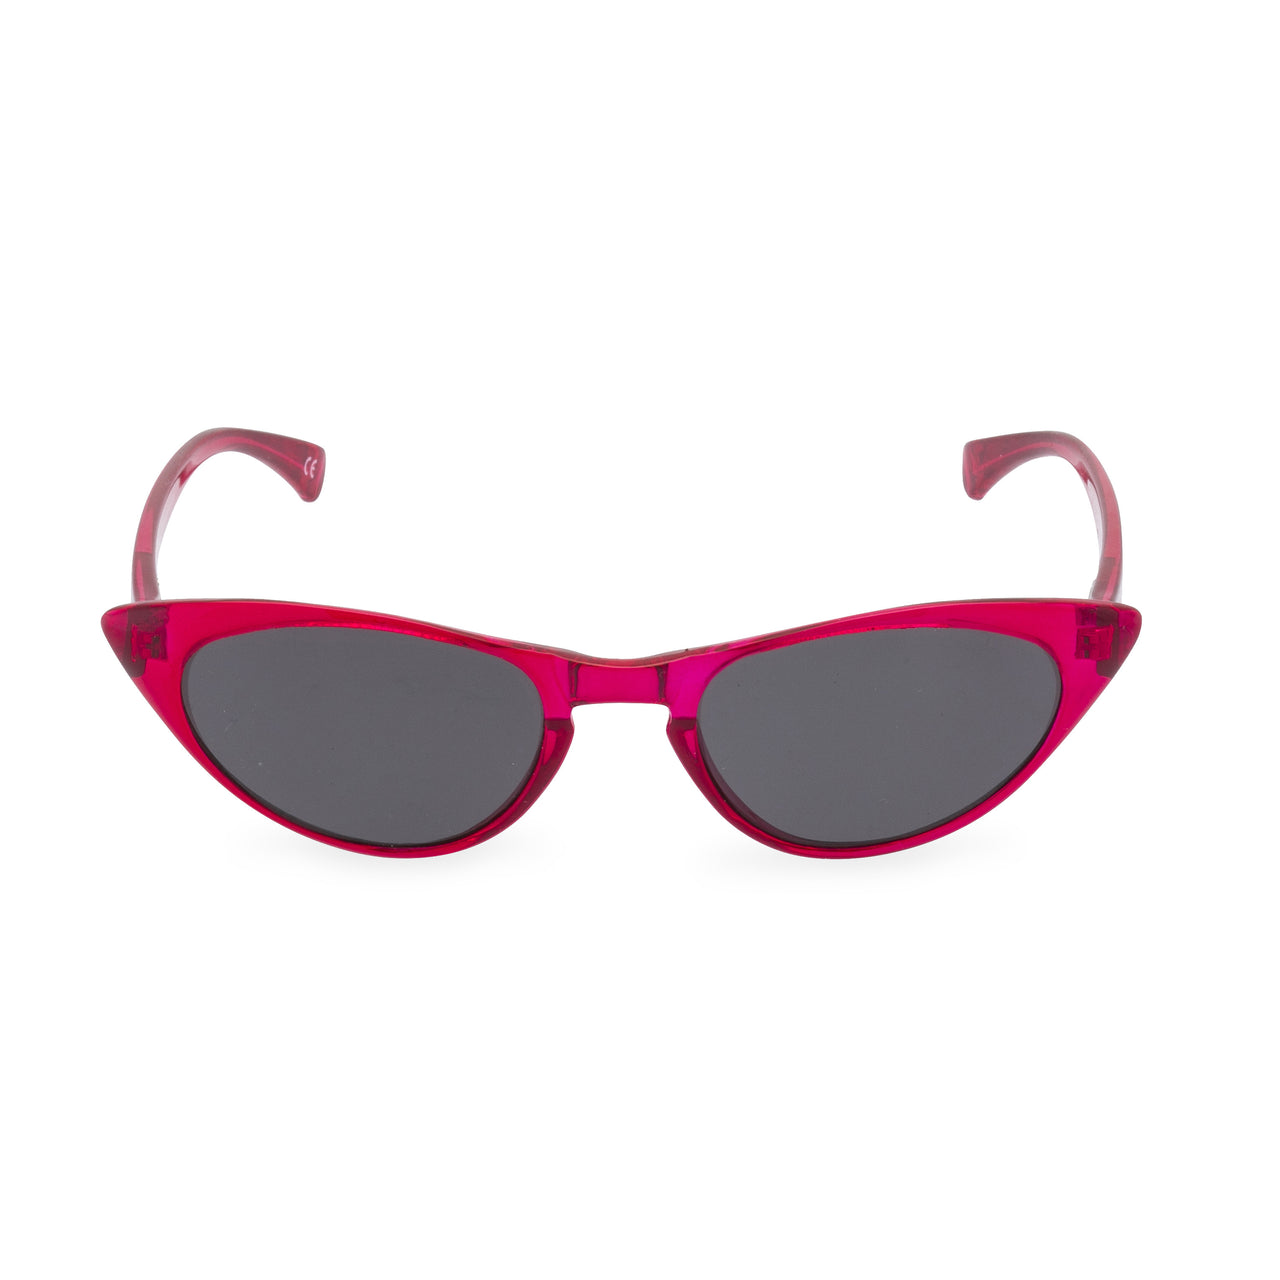 50s style red cateye sunglasses front view